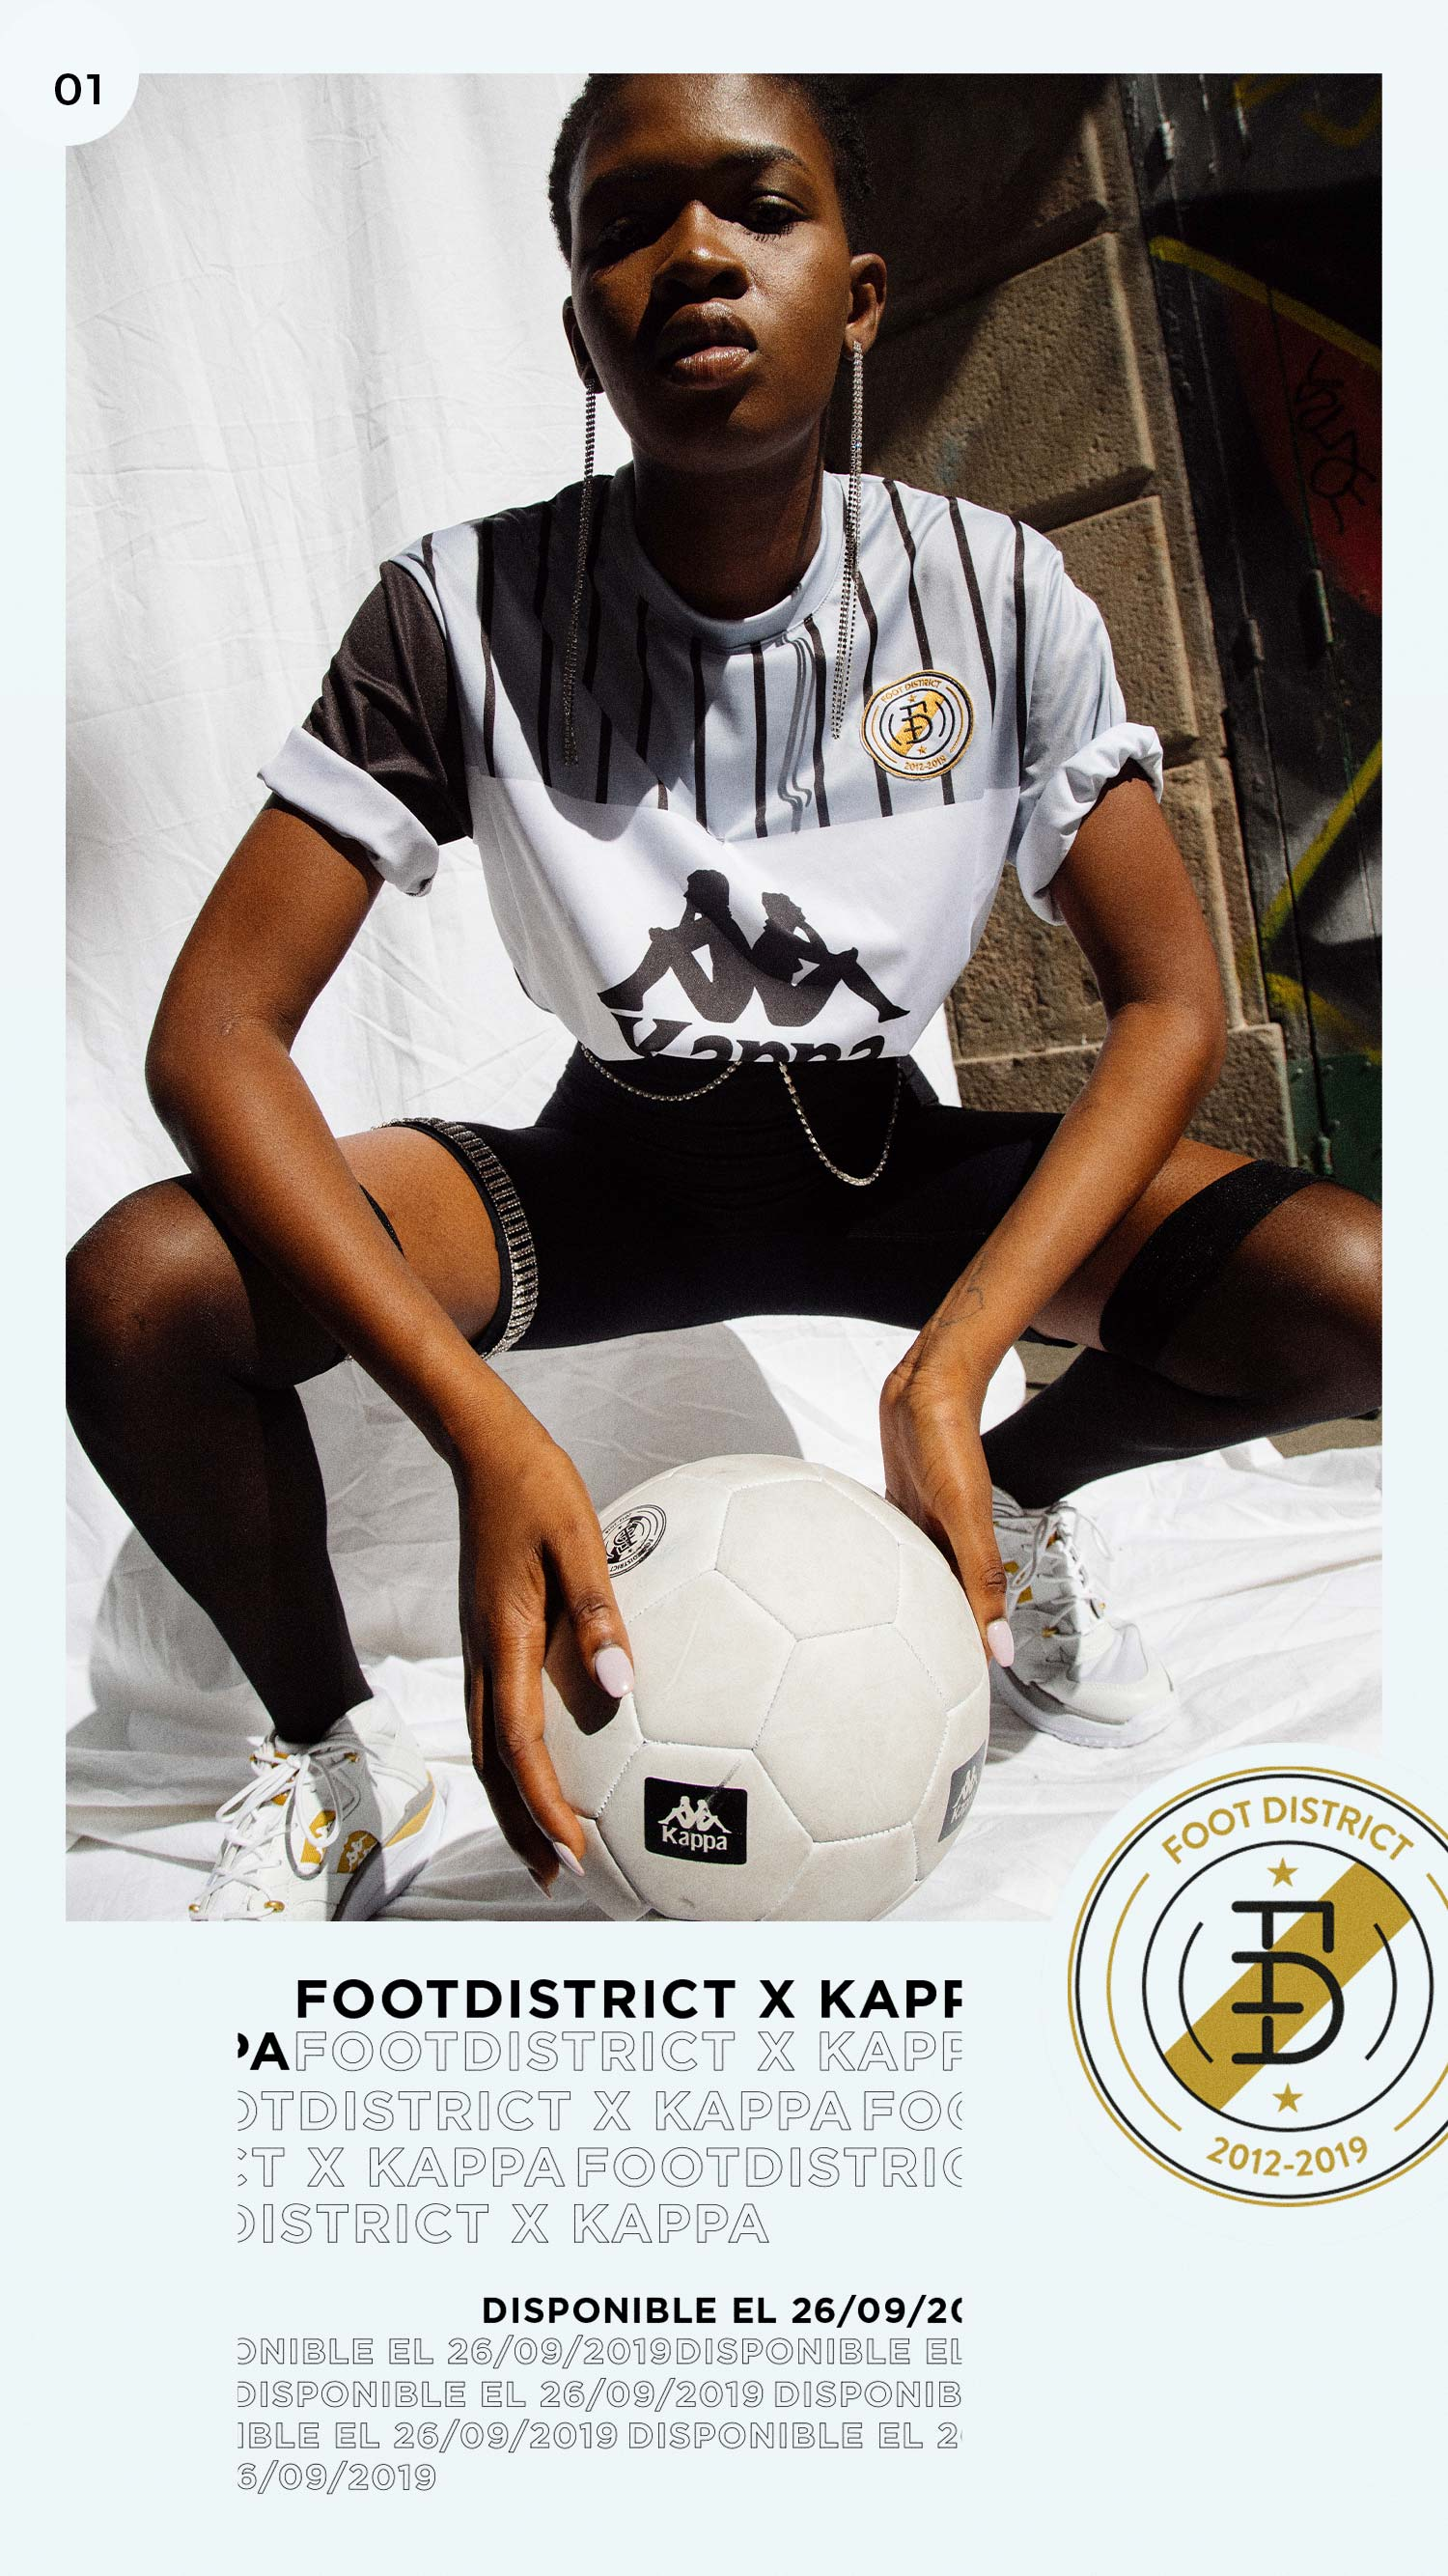 Foot Disrtrict Kappa - Sneakers Magazine